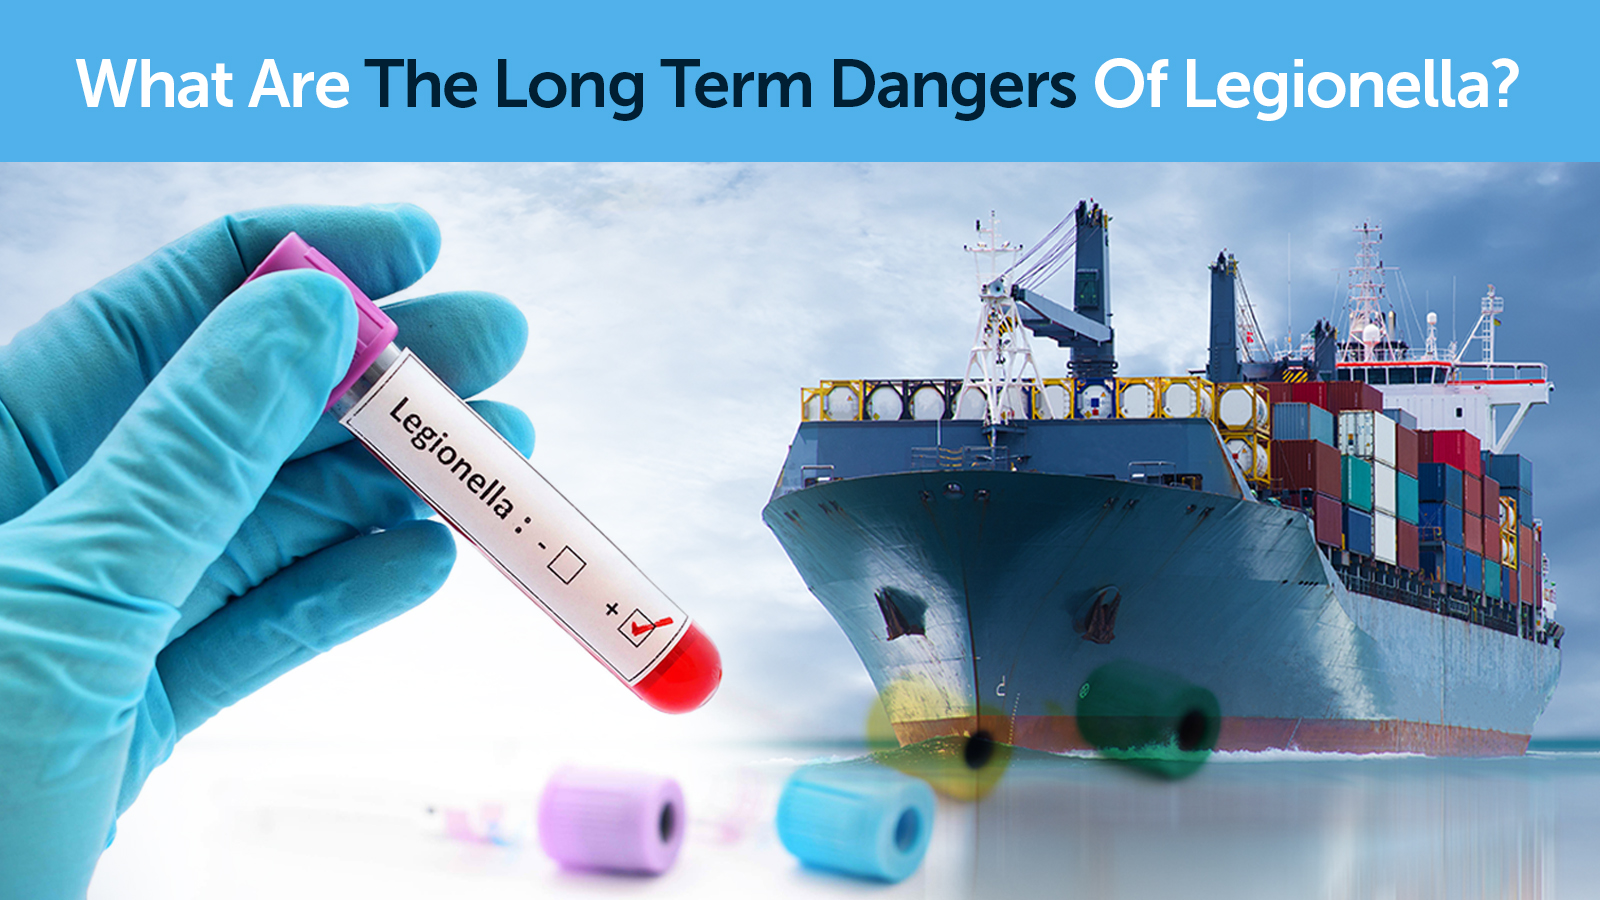 What Are The Long Term Dangers Of Legionella?